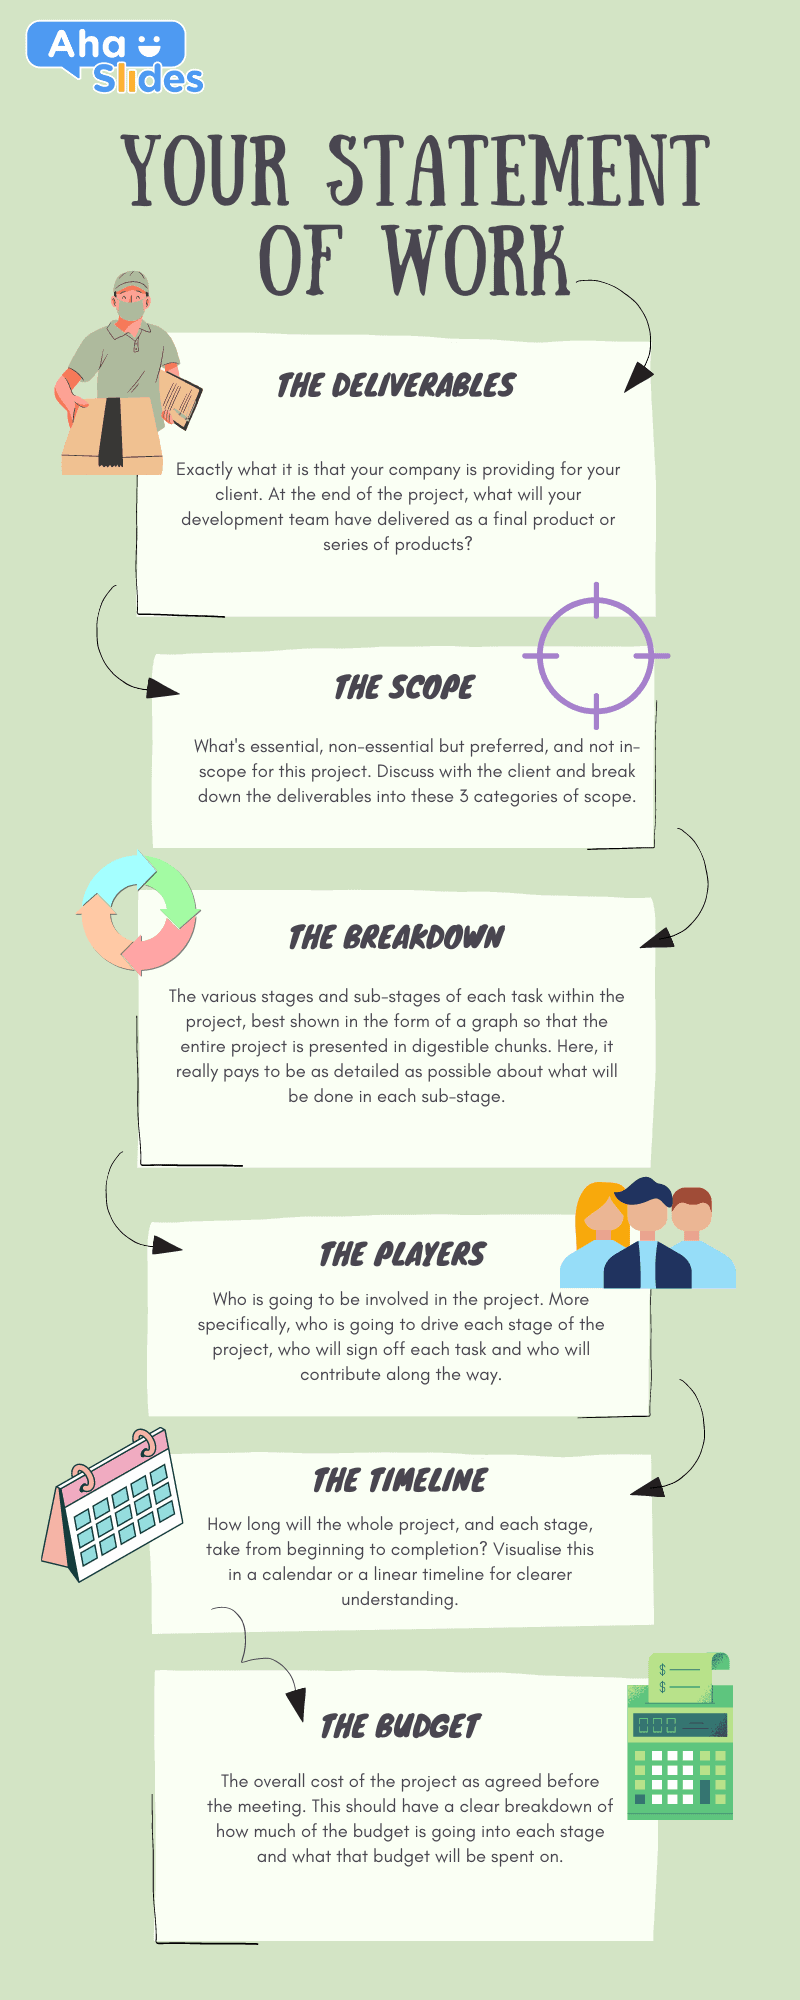 Infographic explaining the 6 mini-steps involved in announcing a statement of work at a project kickoff meeting.